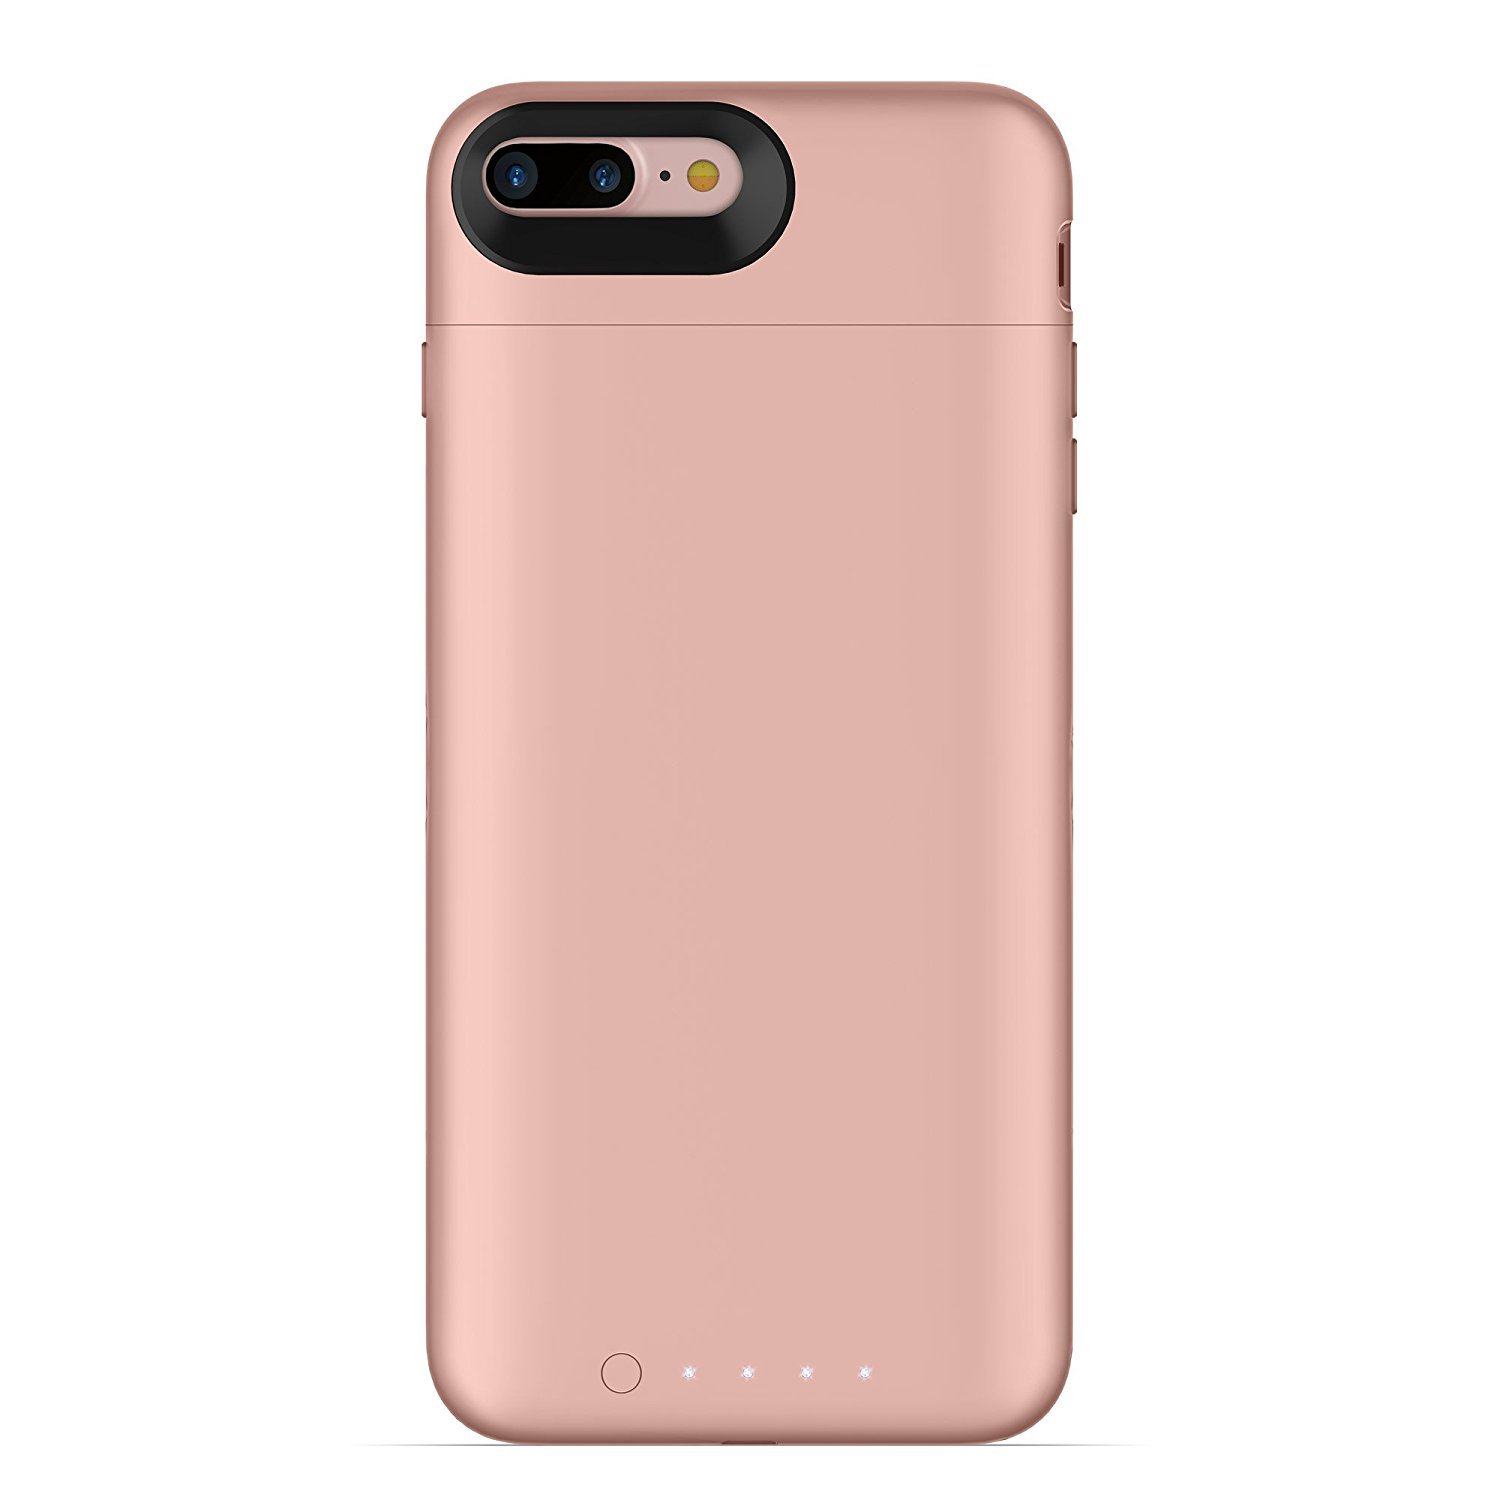 newest e0725 f2856 Mophie Juice Pack Air 2420mAh Protective Battery Case for Apple iPhone 7  Plus - Rose Gold